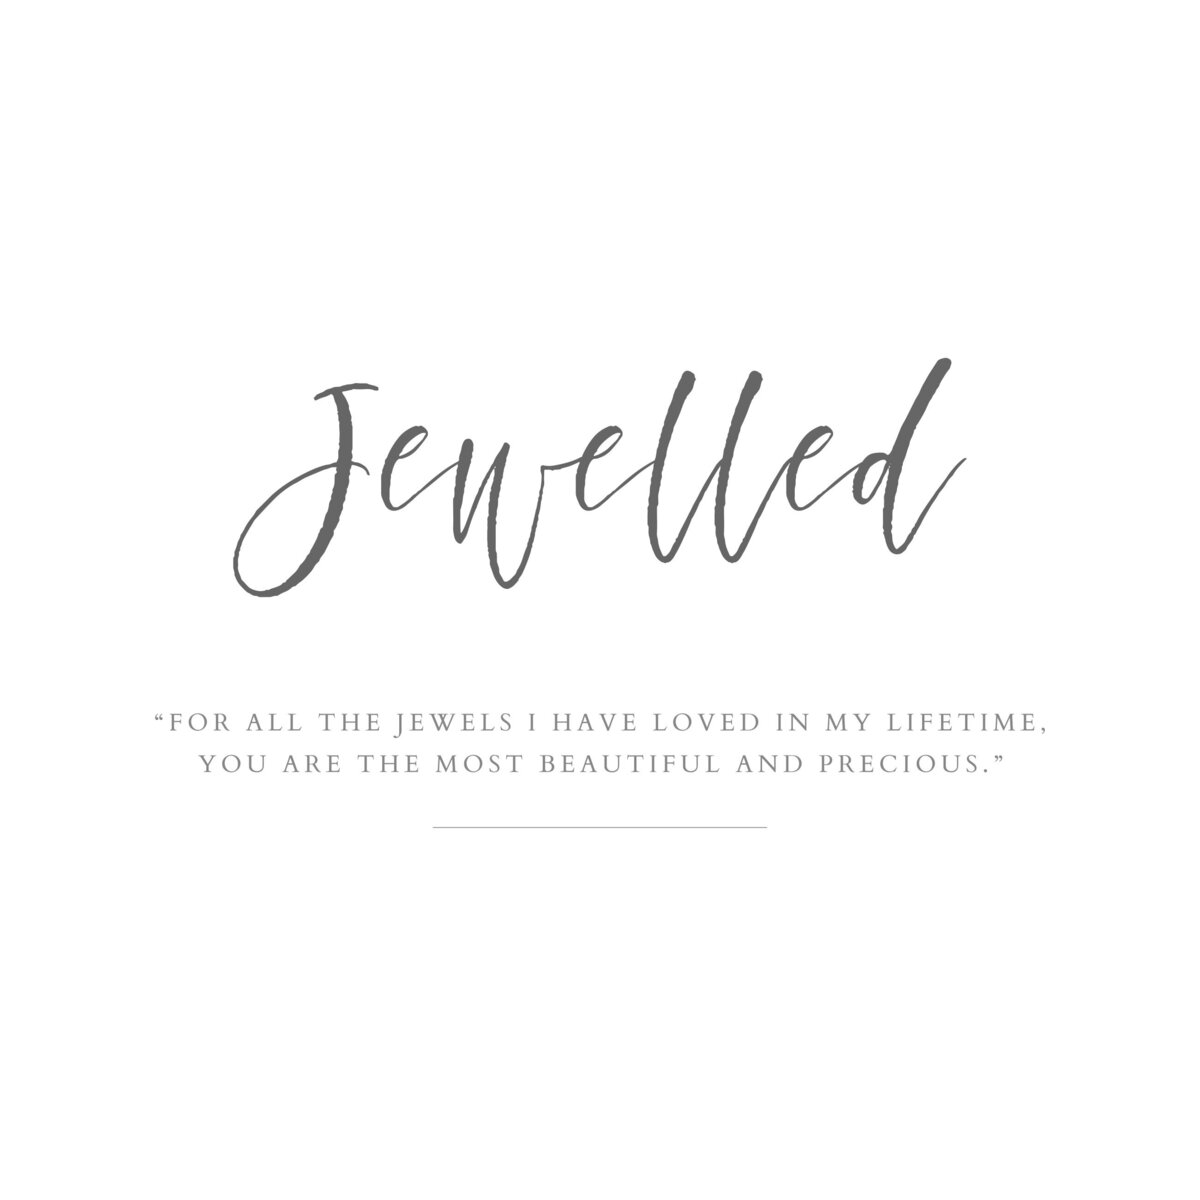 Jewelled_Title Page